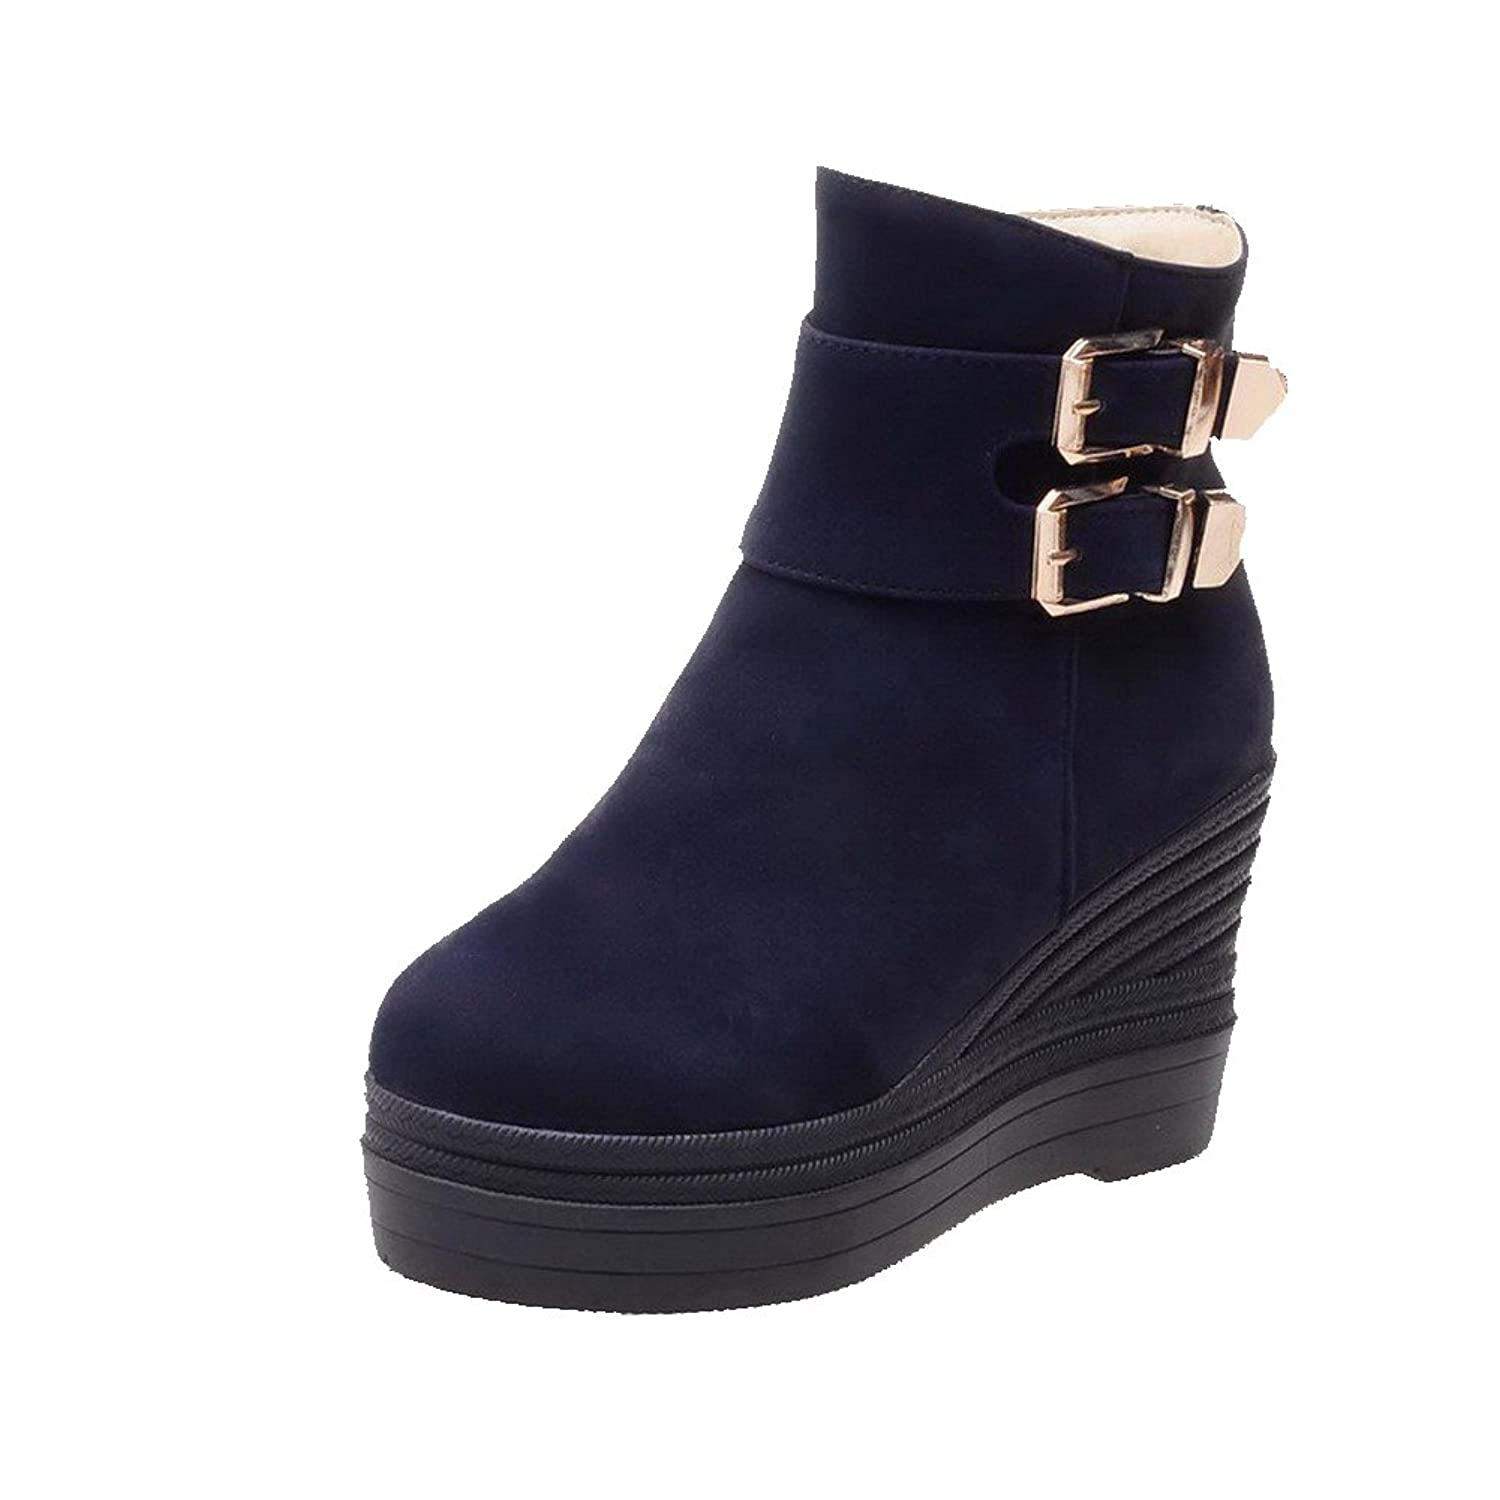 AmoonyFashion Women's Closed Round Toe High-Heels Frosted Low-top Solid Boots